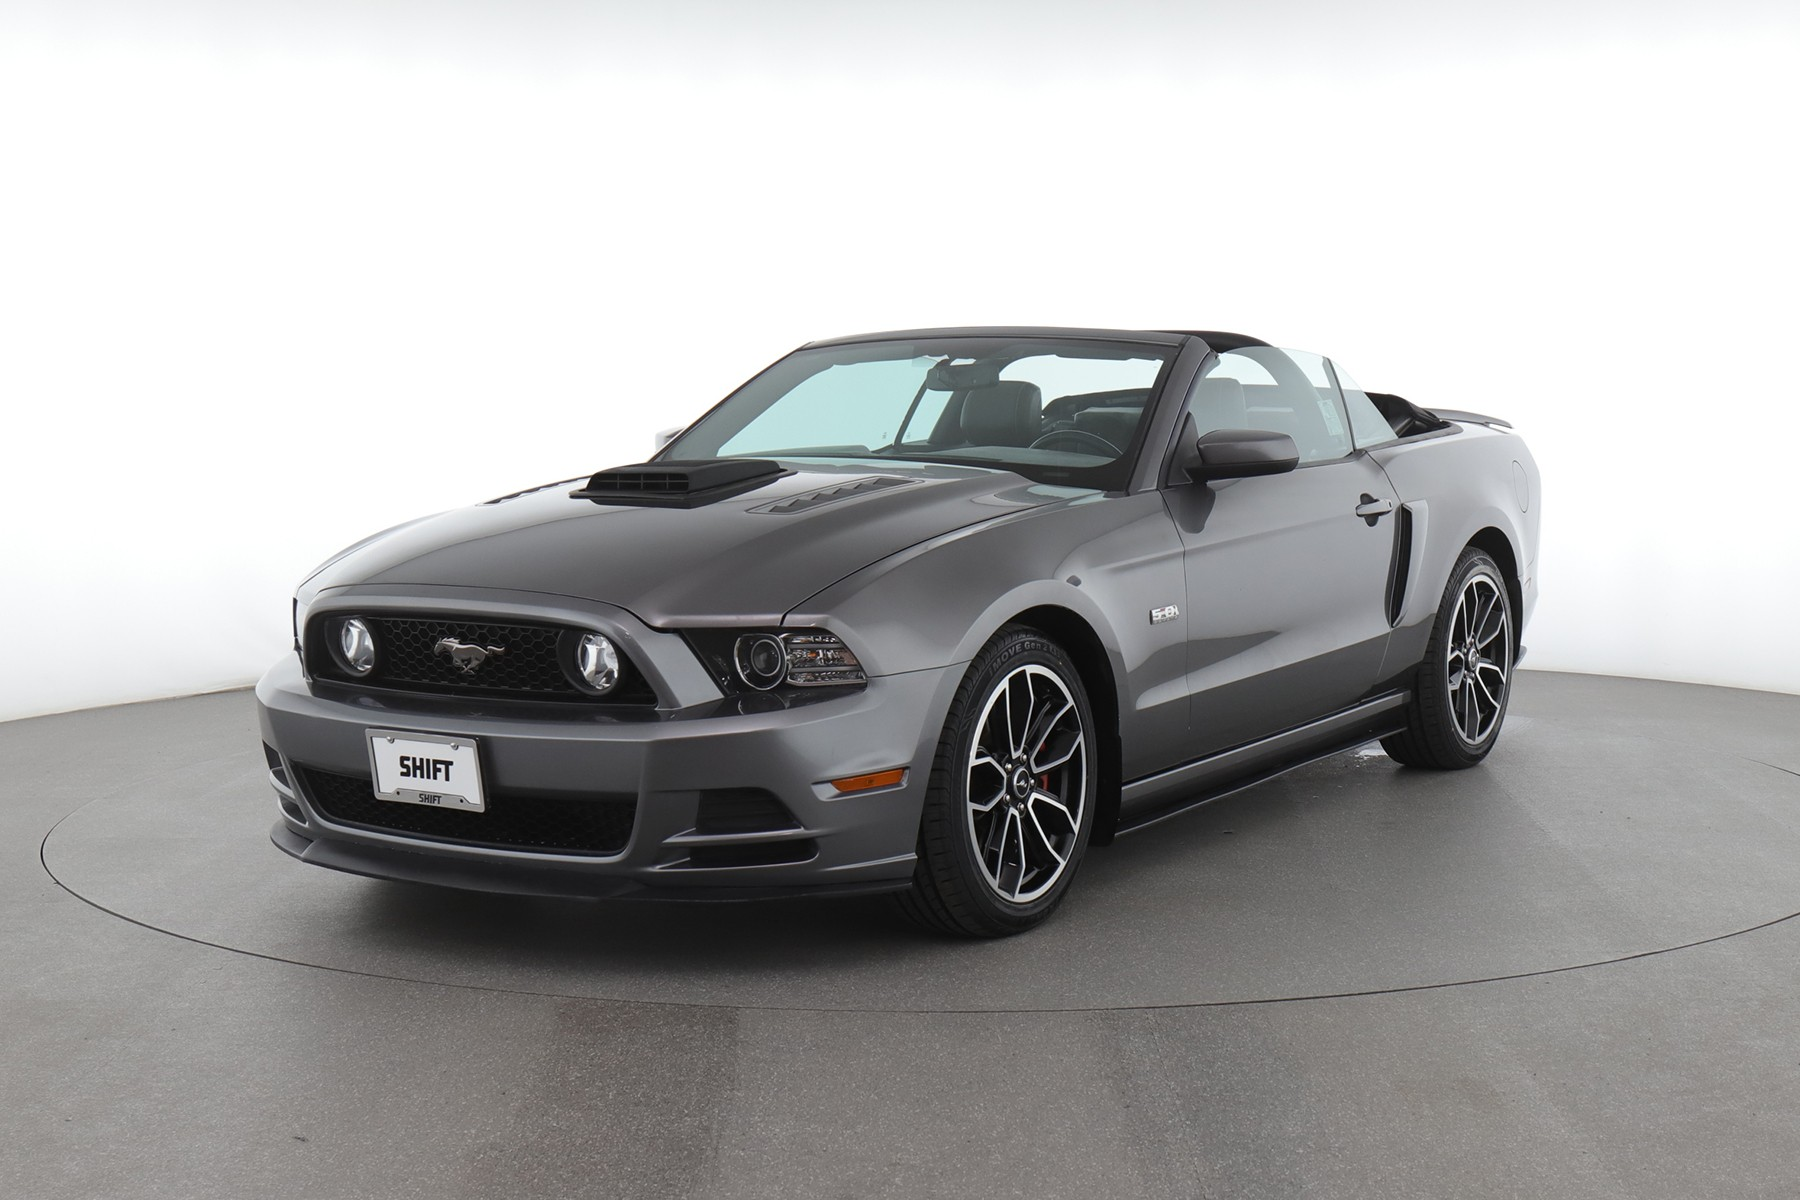 What's The Real Price Of A Ford Mustang?